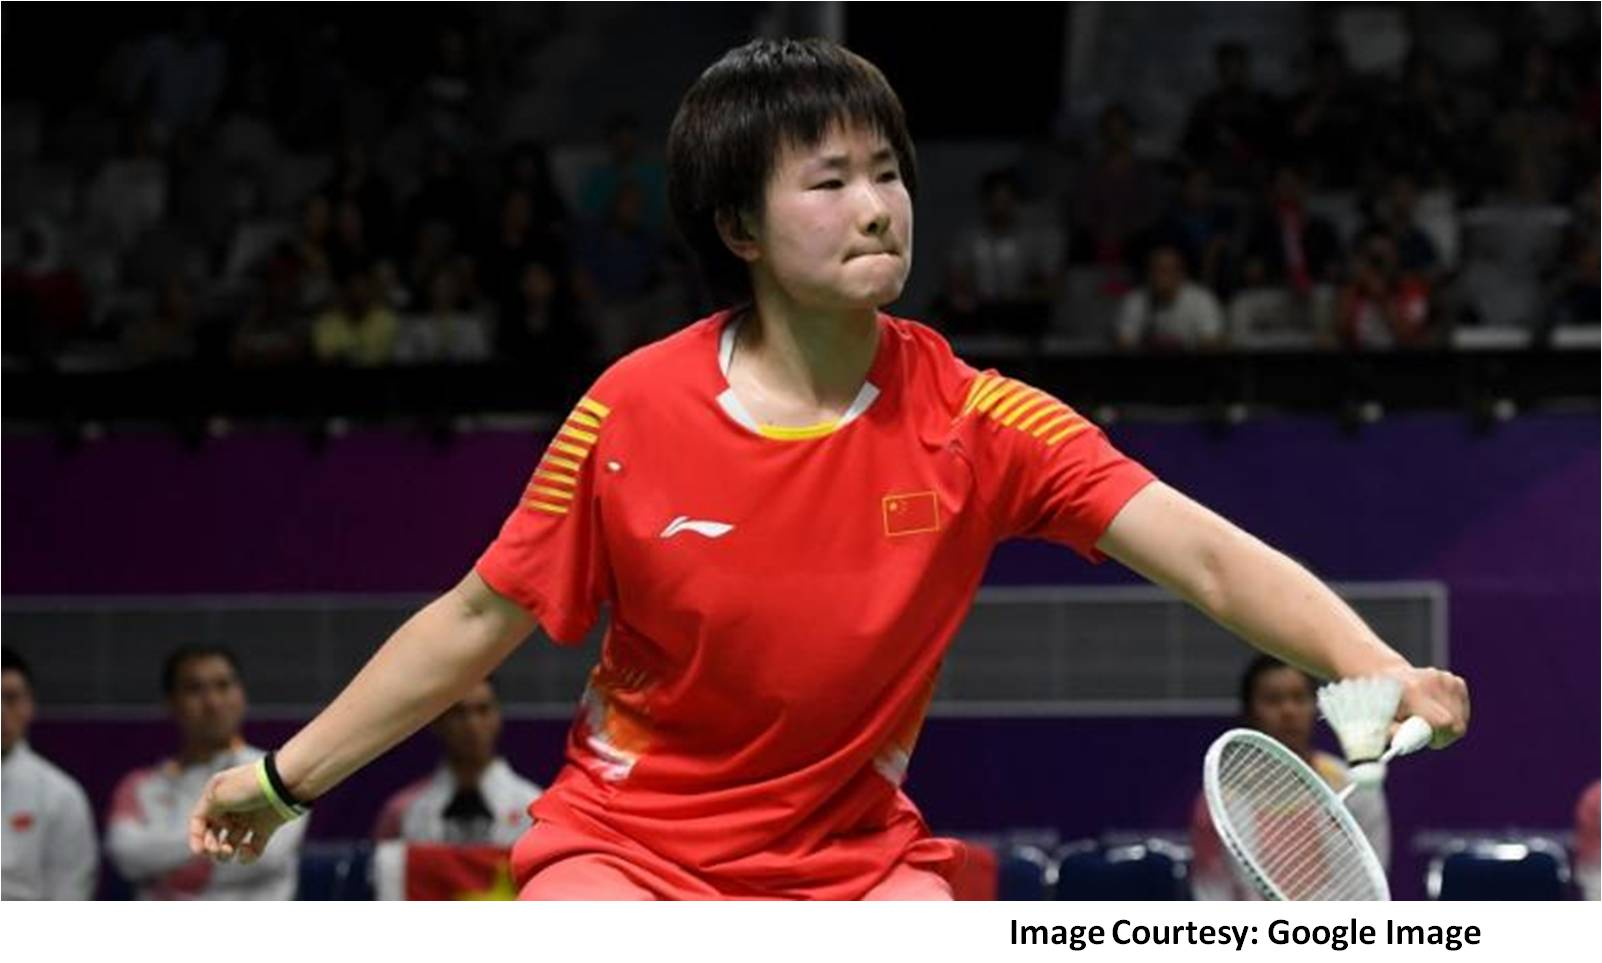 Chen_Yufei_Best_Badminton_Player